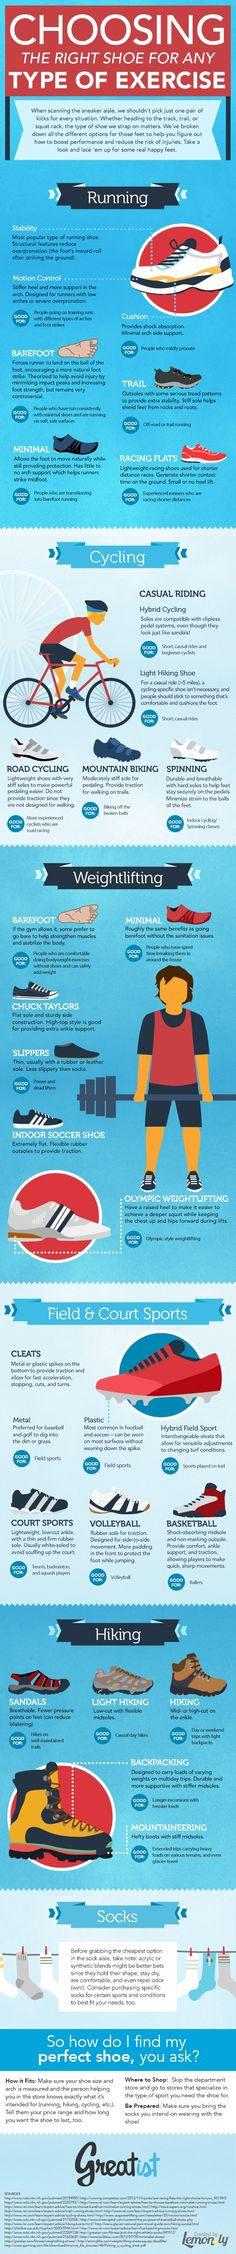 Choosing the Right Shoe for Any Type of Exercise http://greatist.com/fitness/how-to-choose-shoes-for-exercise-infographic